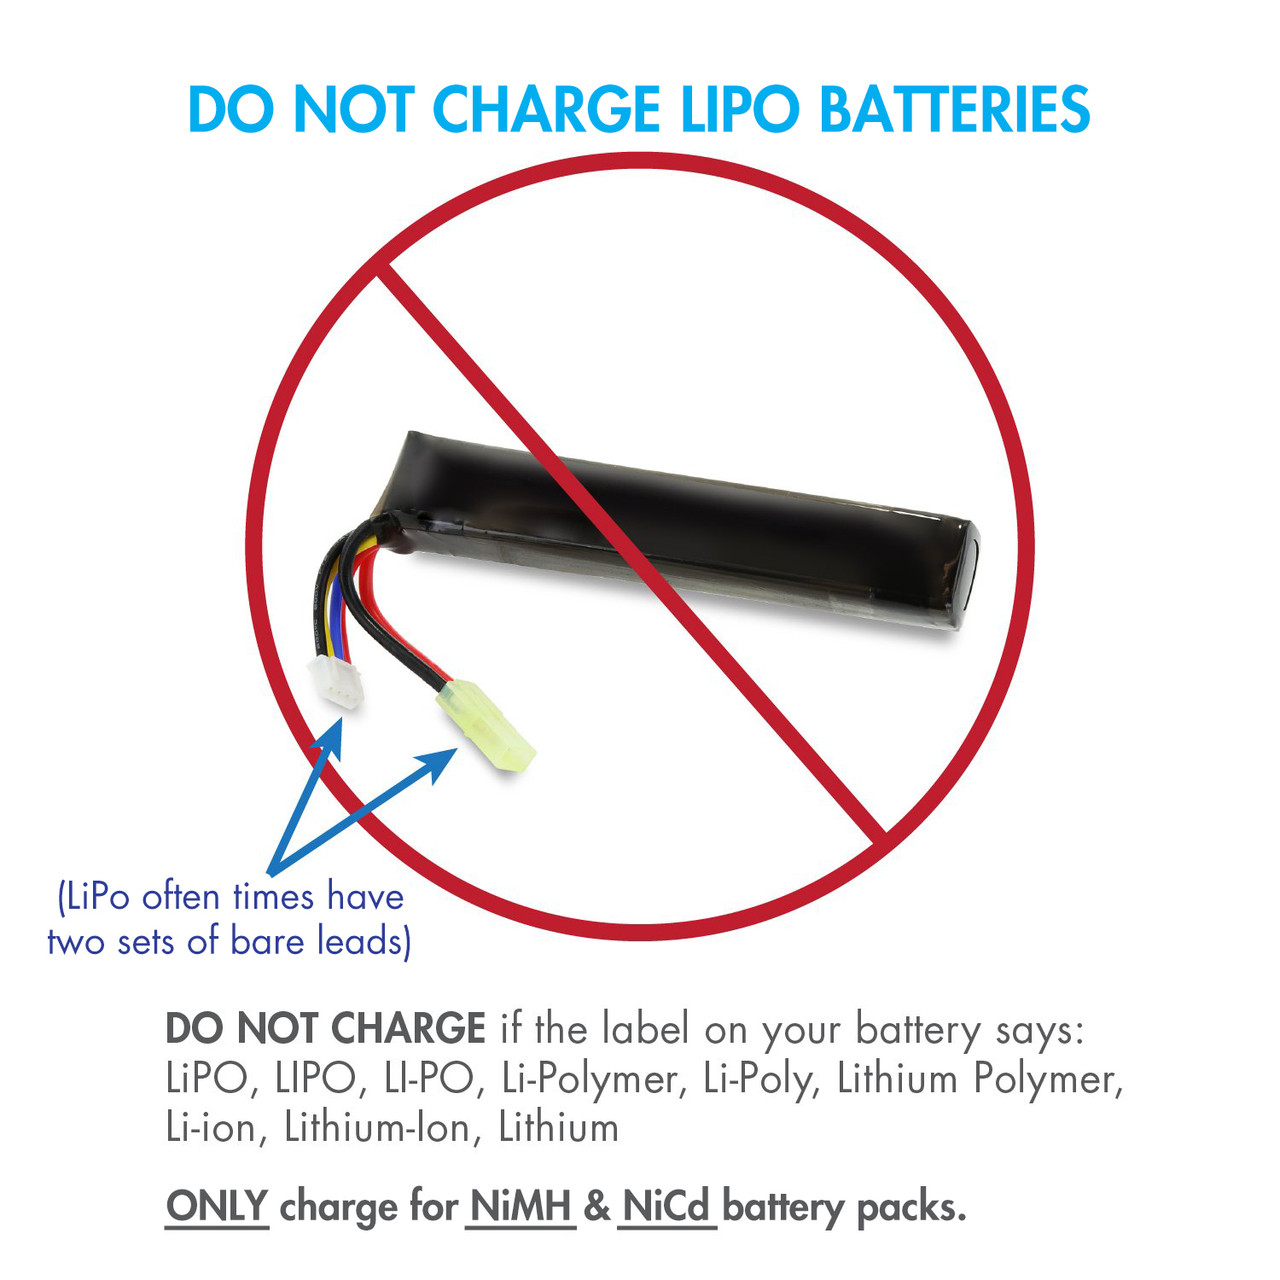 Combo: Tenergy NiMH 8.4V 3800mAh Battery Pack with Tamiya, 2-pack + Charger (#01025)